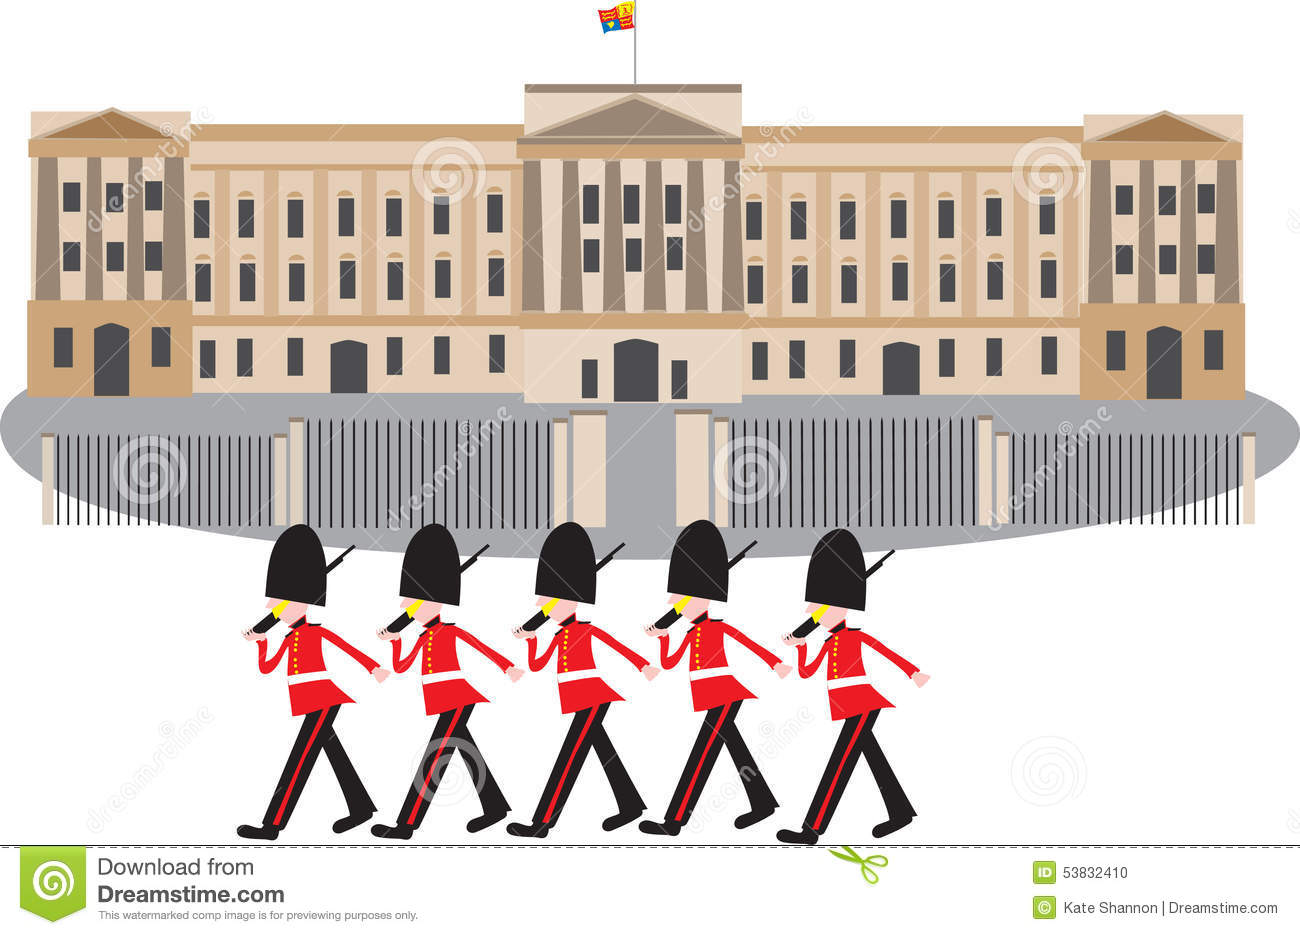 Buckingham Palace Guards Clipart Buckingham Palace Guard - Clipart Kid